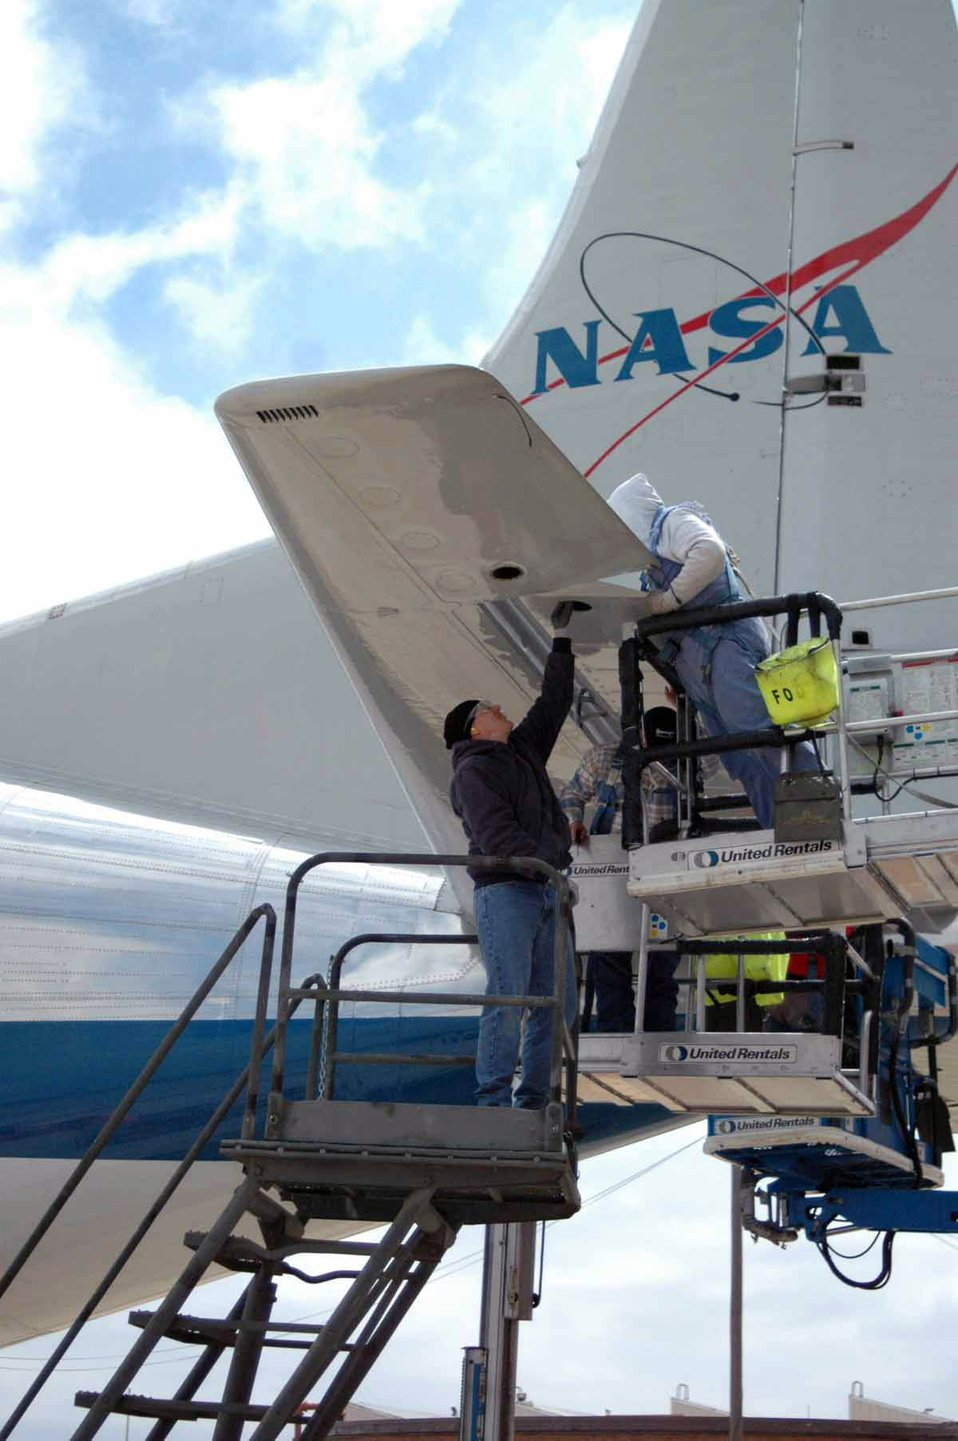 Inspecting the Super Guppy